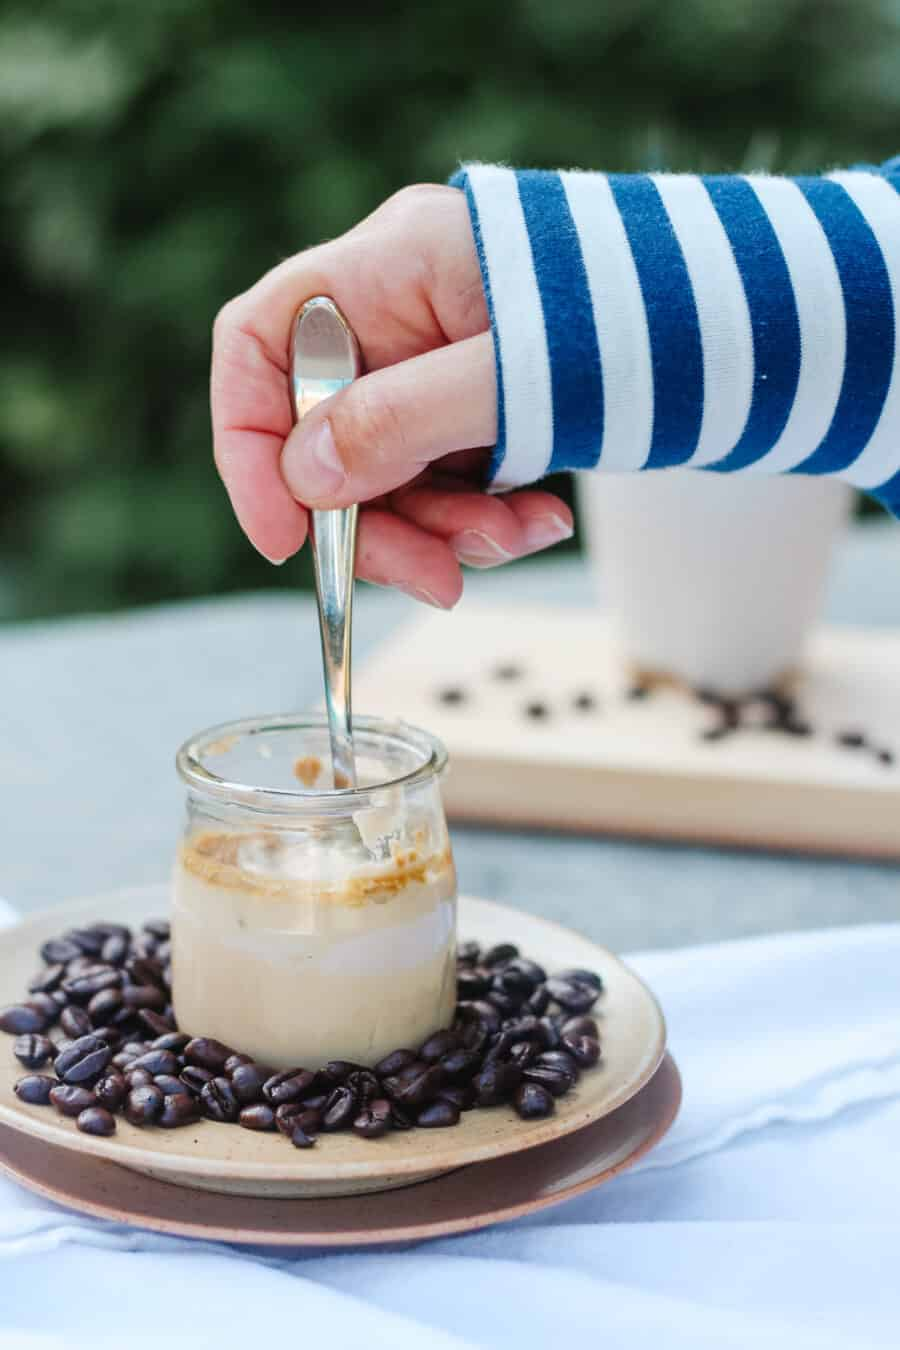 Hand scooping in a coffee pot de creme with whole coffee beans around, stripped sleeve